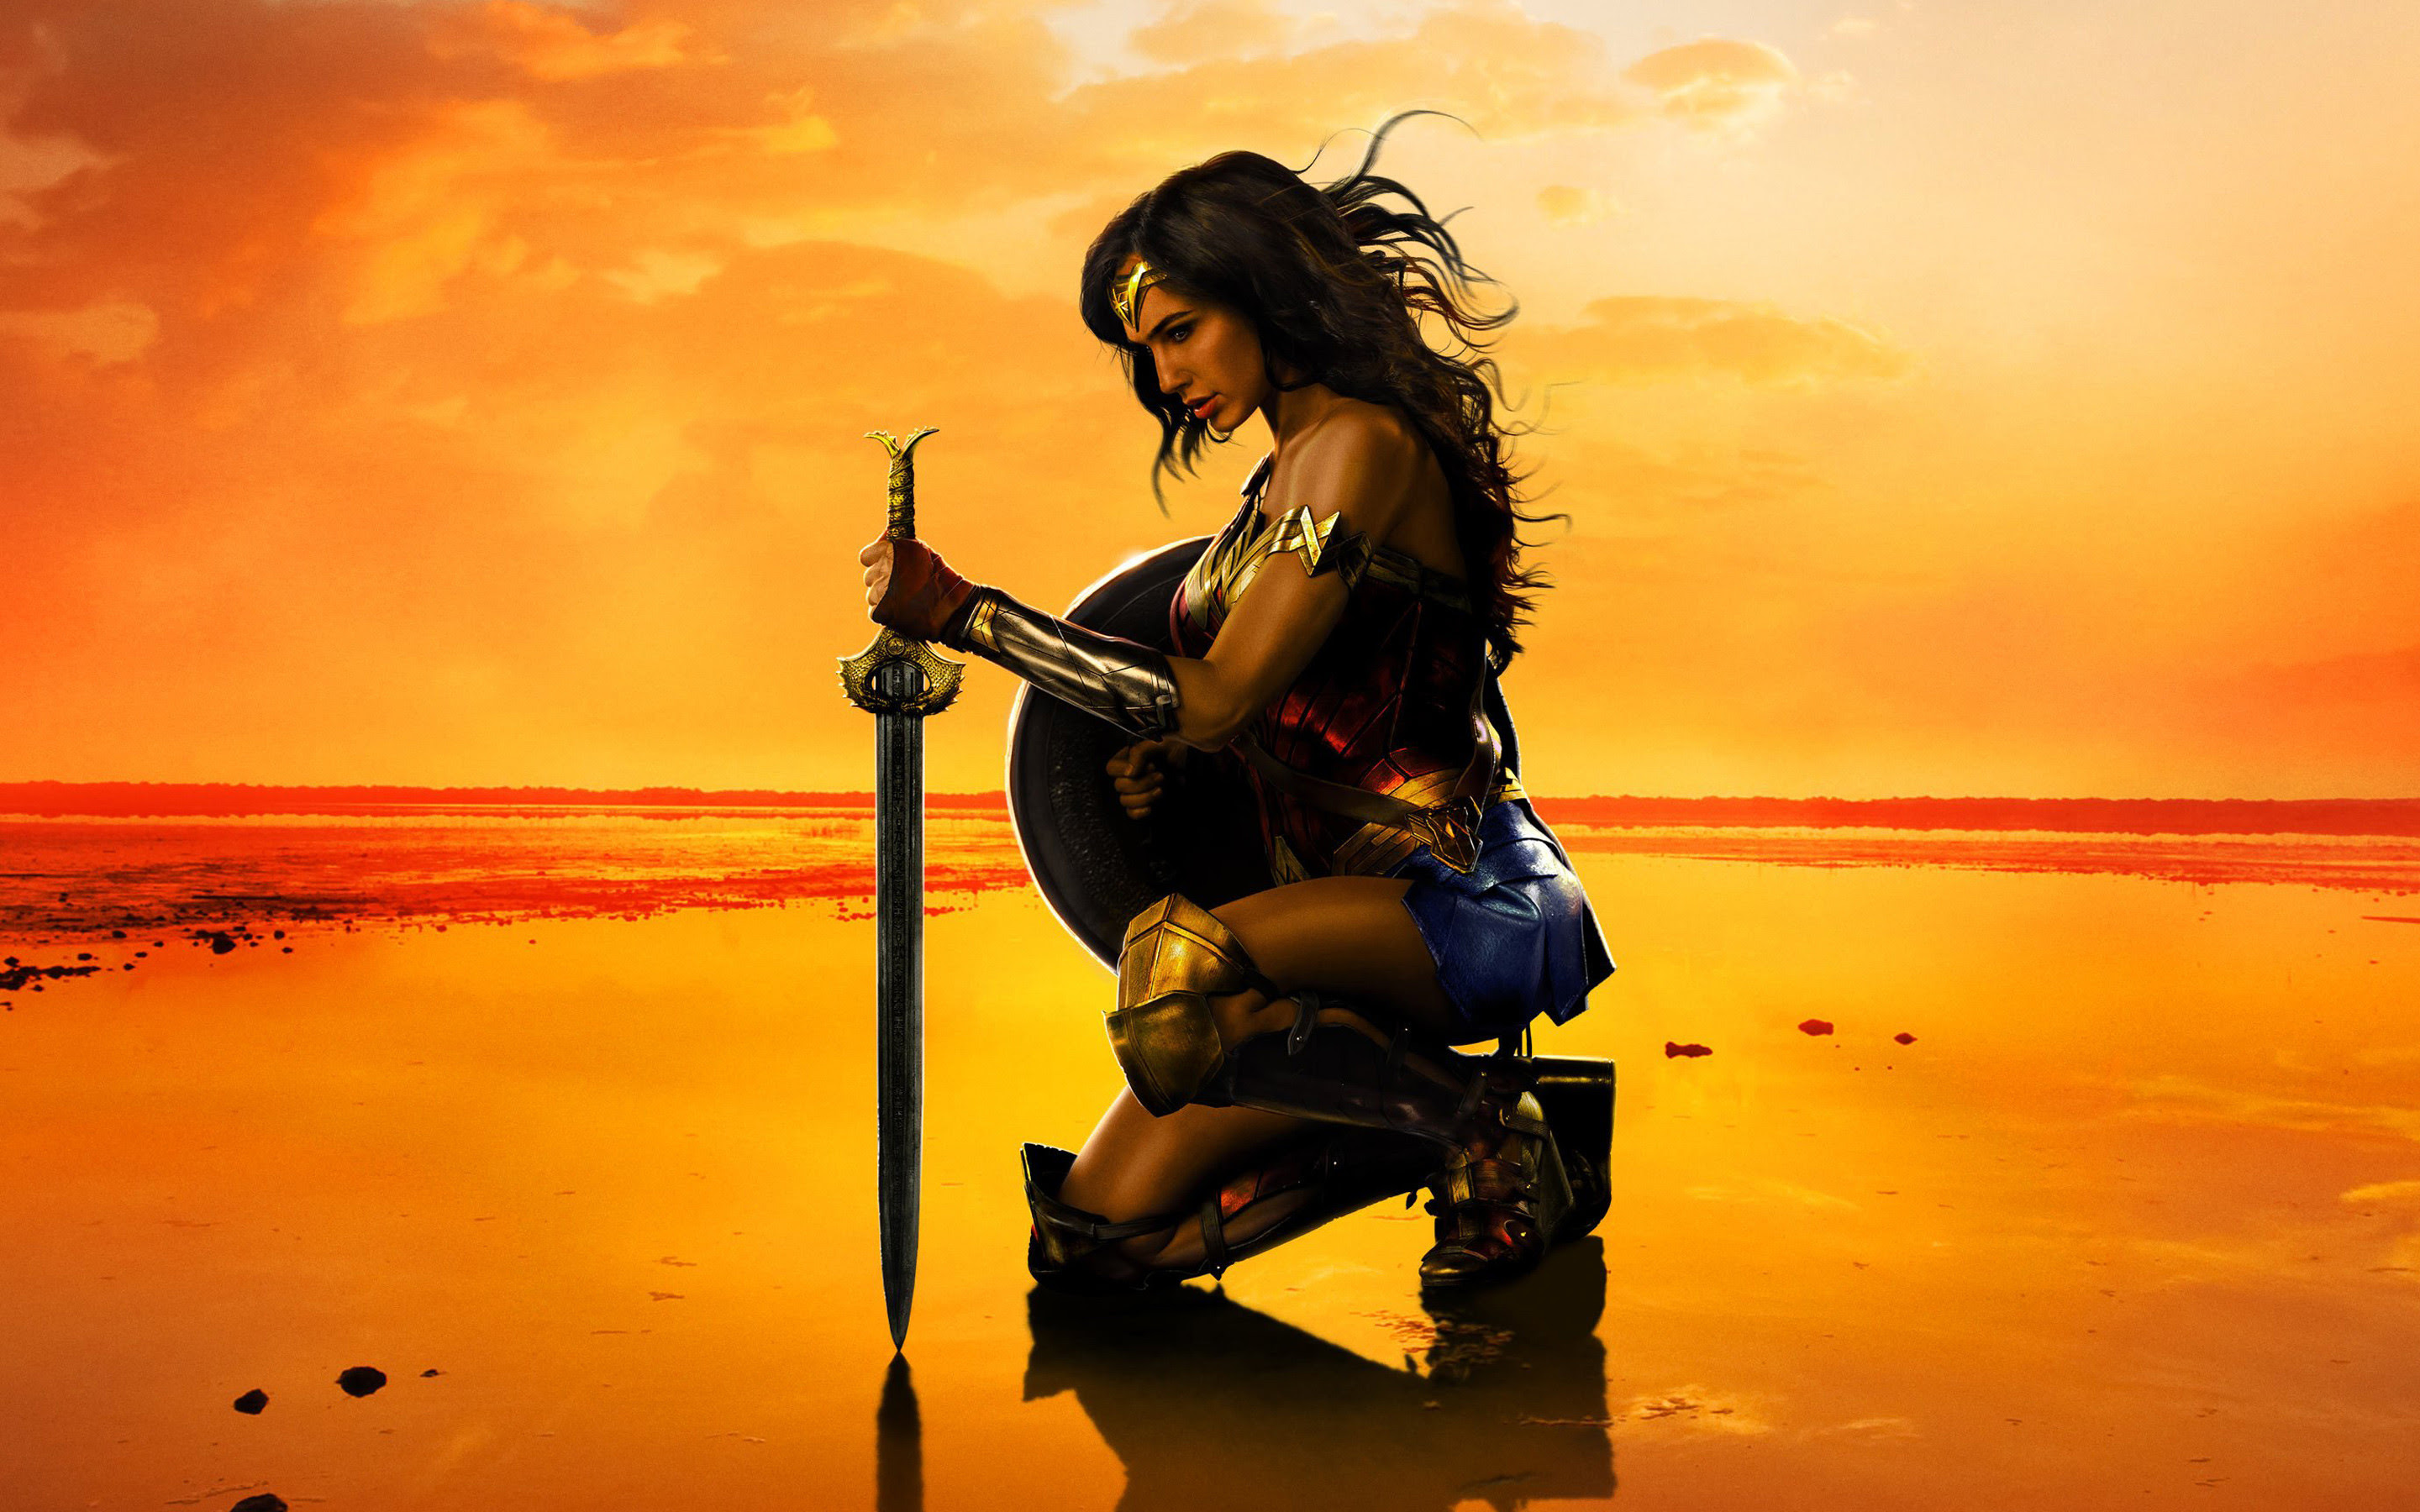 Wonder Woman Wallpaper 71 Images